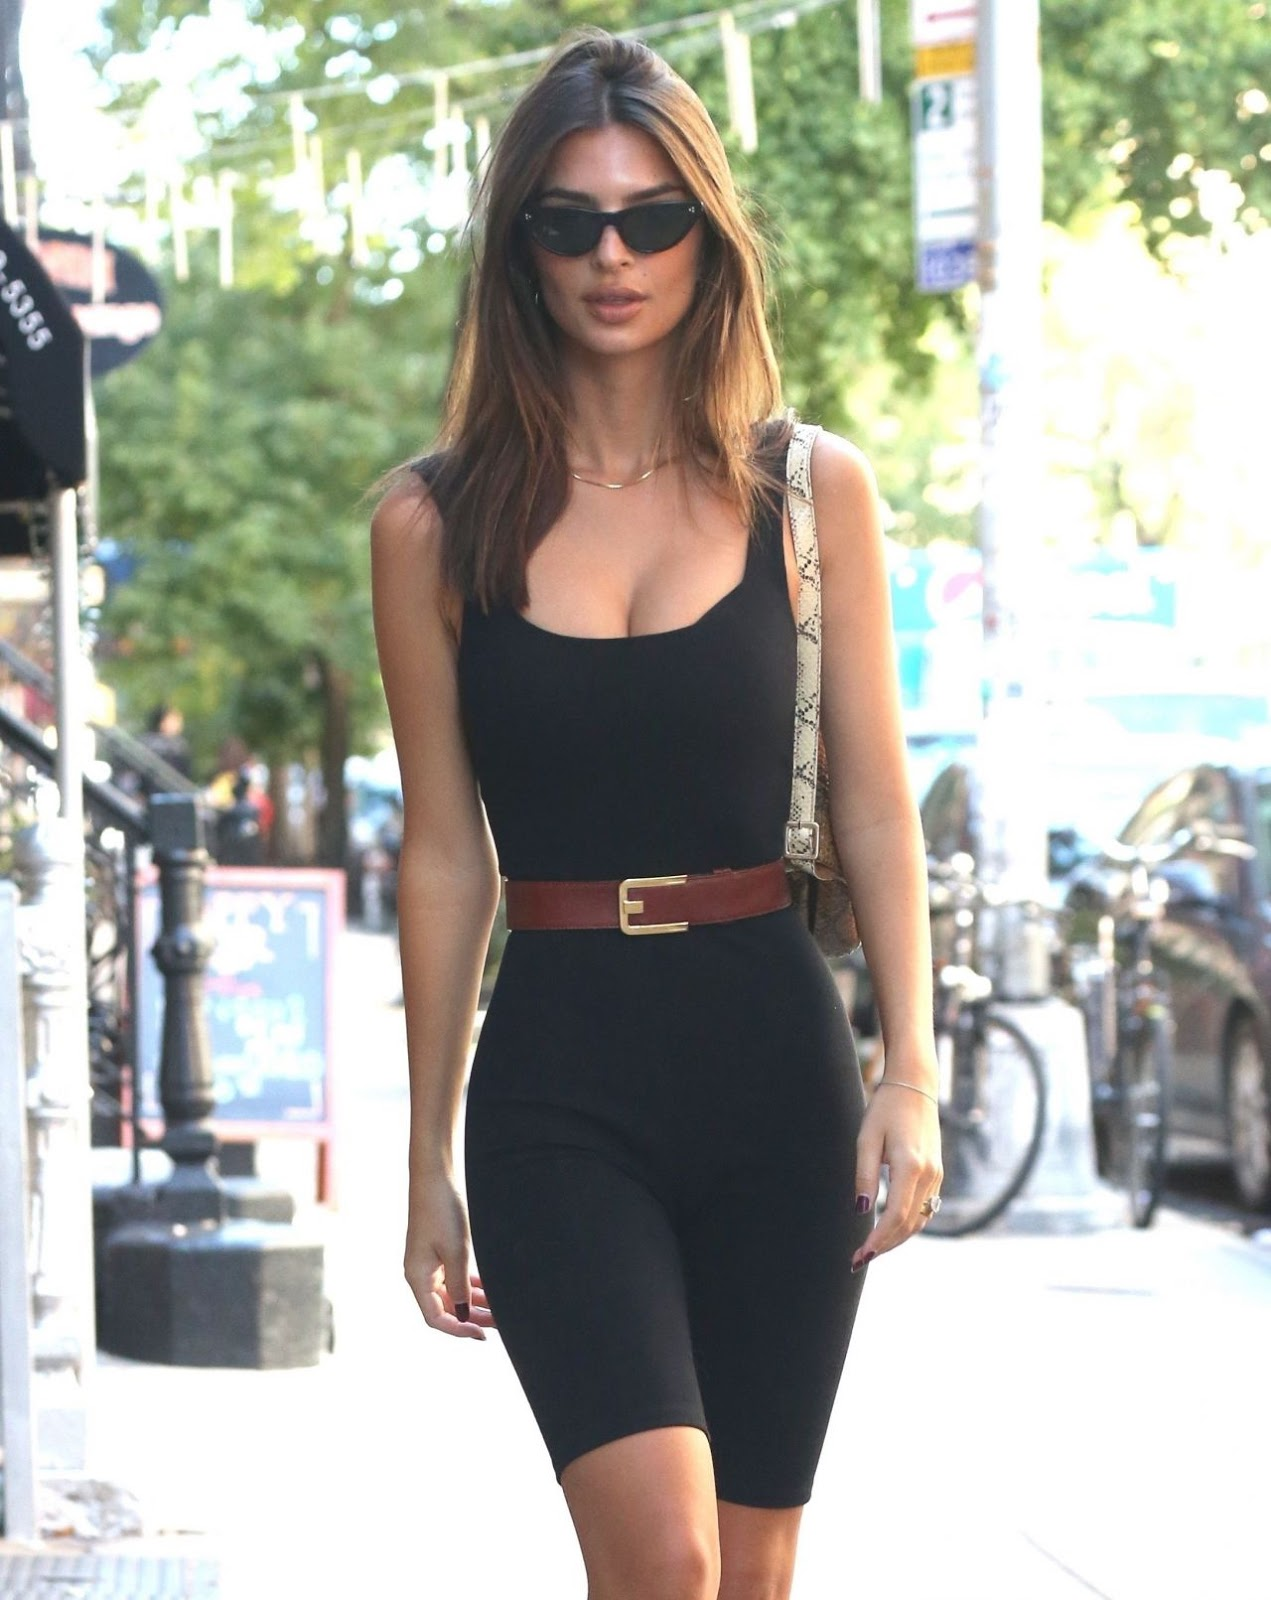 Emily Ratajkowski puts sultry figure on show in spandex jumpsuit